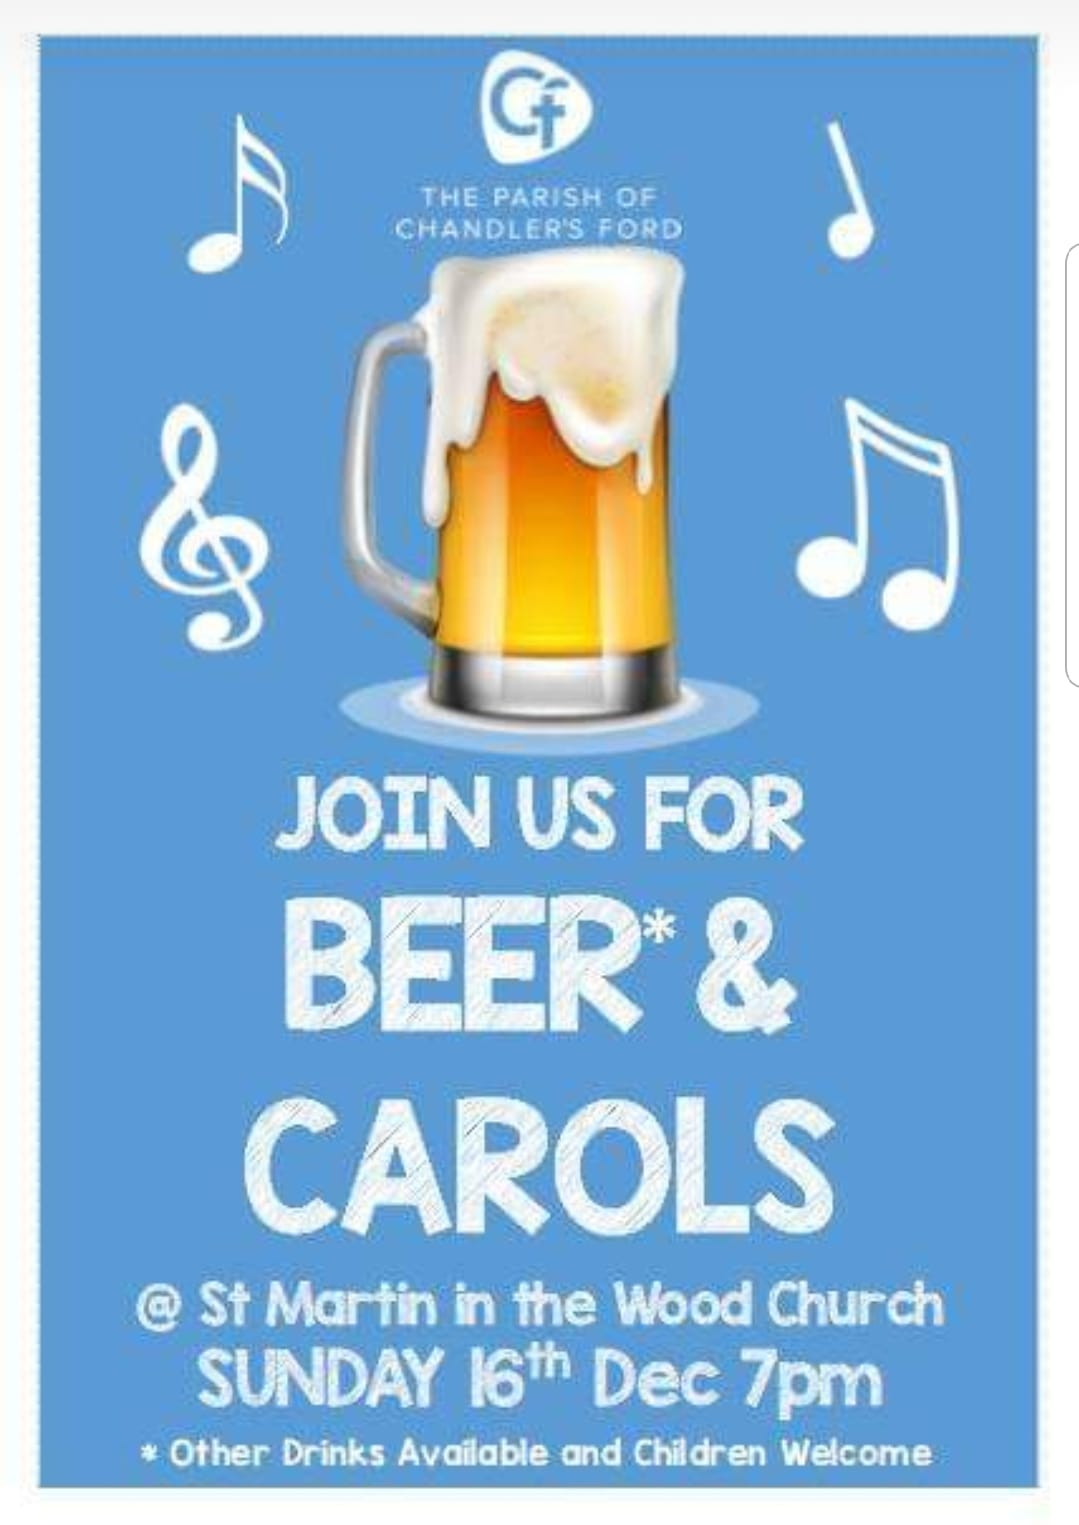 Beer and Carol at St. Martin in the Wood Church